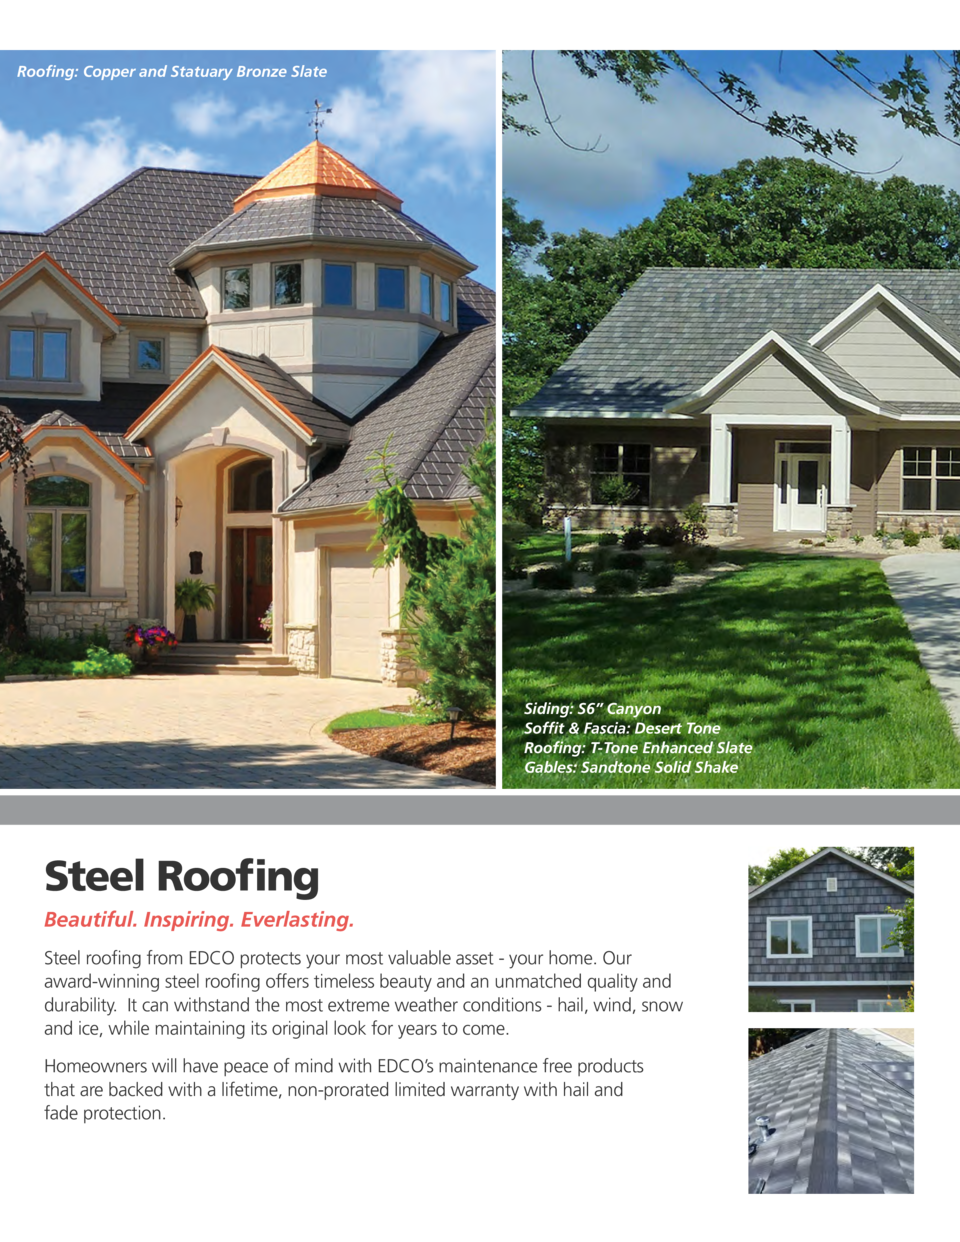 Roofing  Copper and Statuary Bronze Slate  Siding  S6    Canyon Soffit   Fascia  Desert Tone Roofing  T-Tone Enhanced Slat...